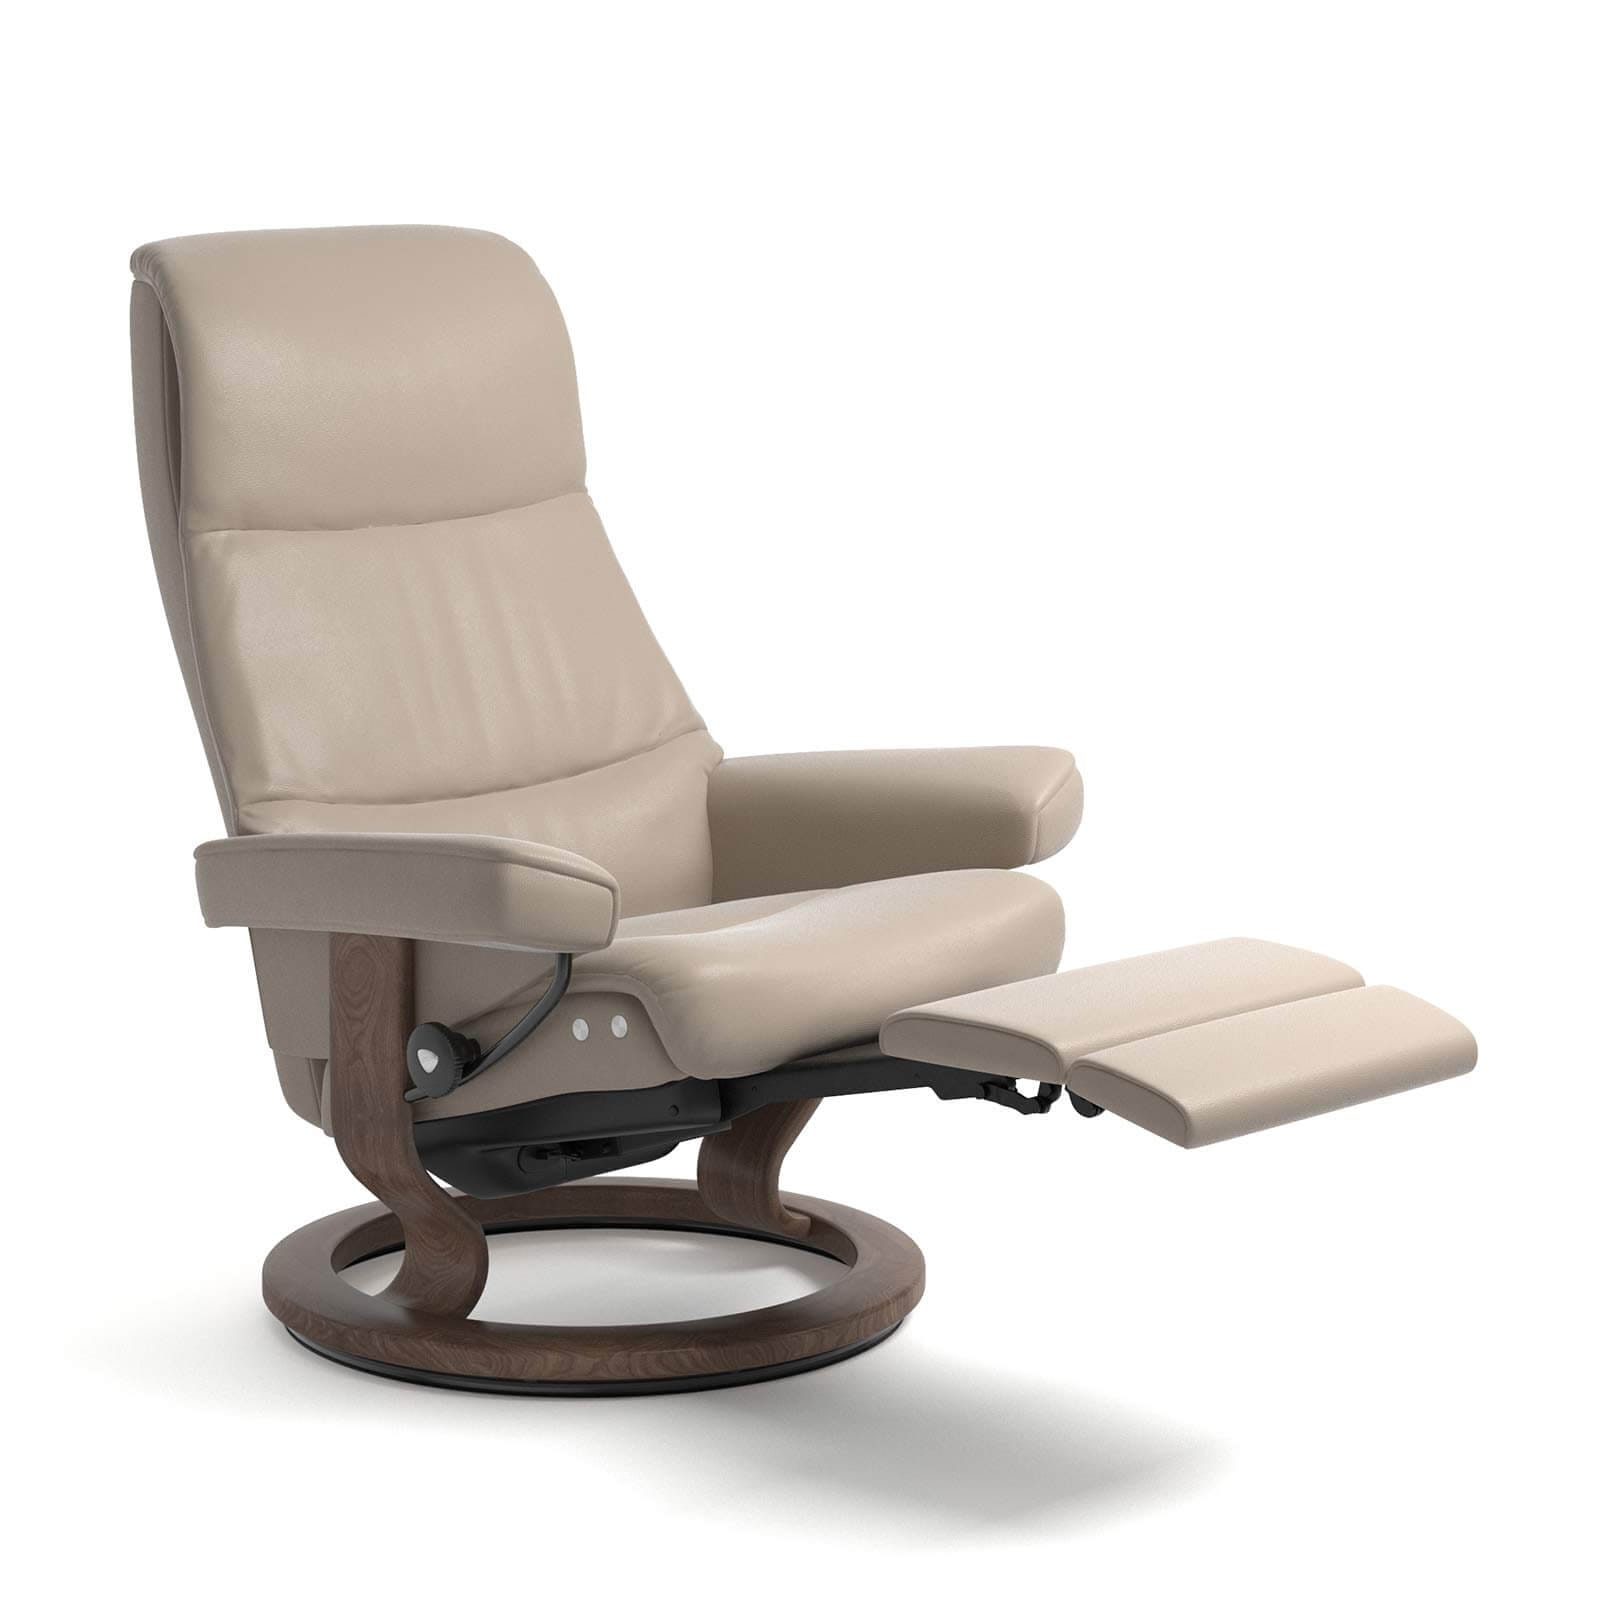 Stressless View Legcomfort Beige Stressless Online Shop